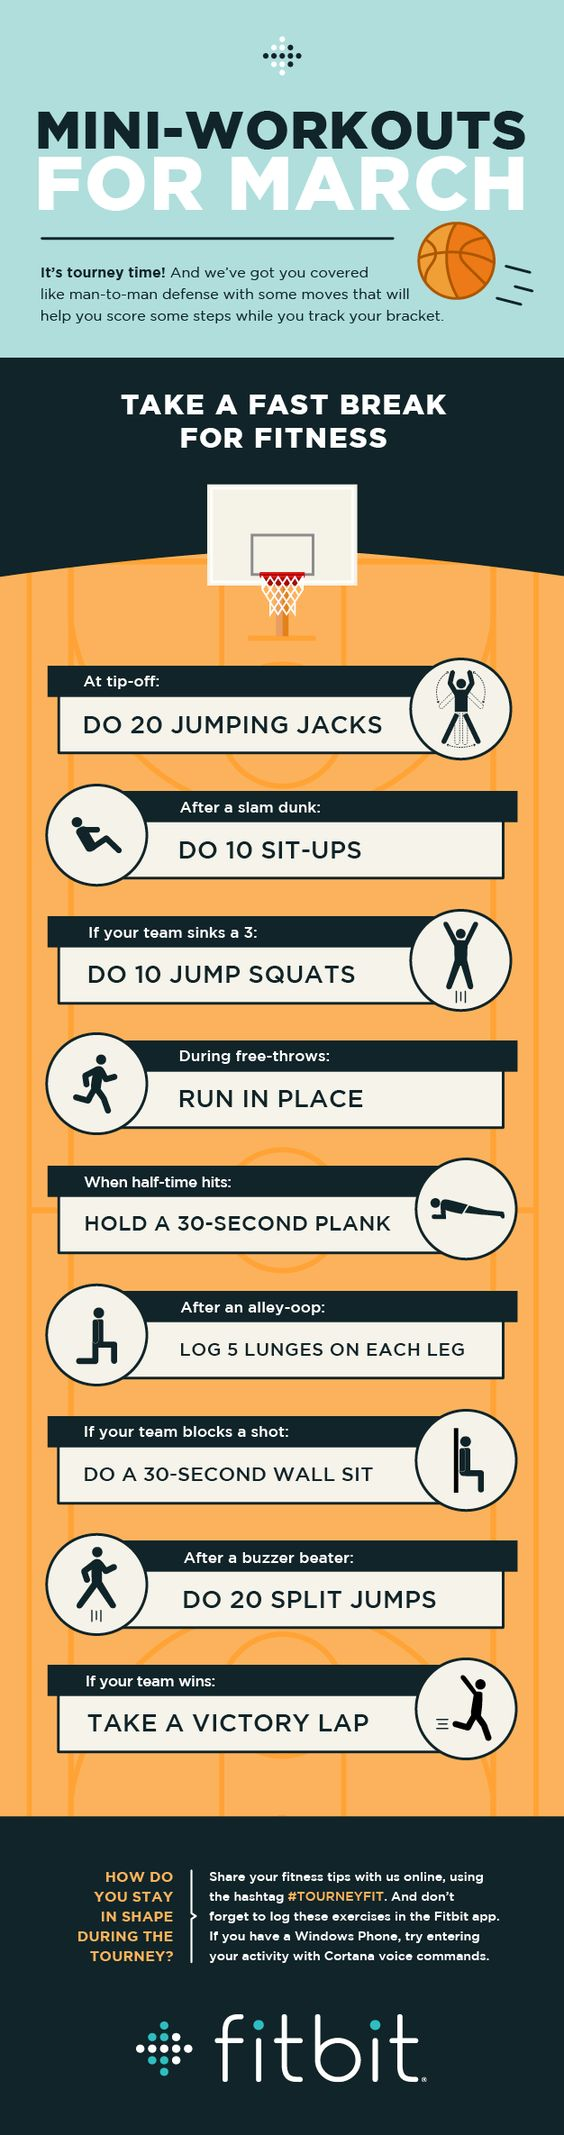 Workout while watching basketball... Or not watching basketball. Maybe just in those moments when all you can muster is 20 jumping jacks.